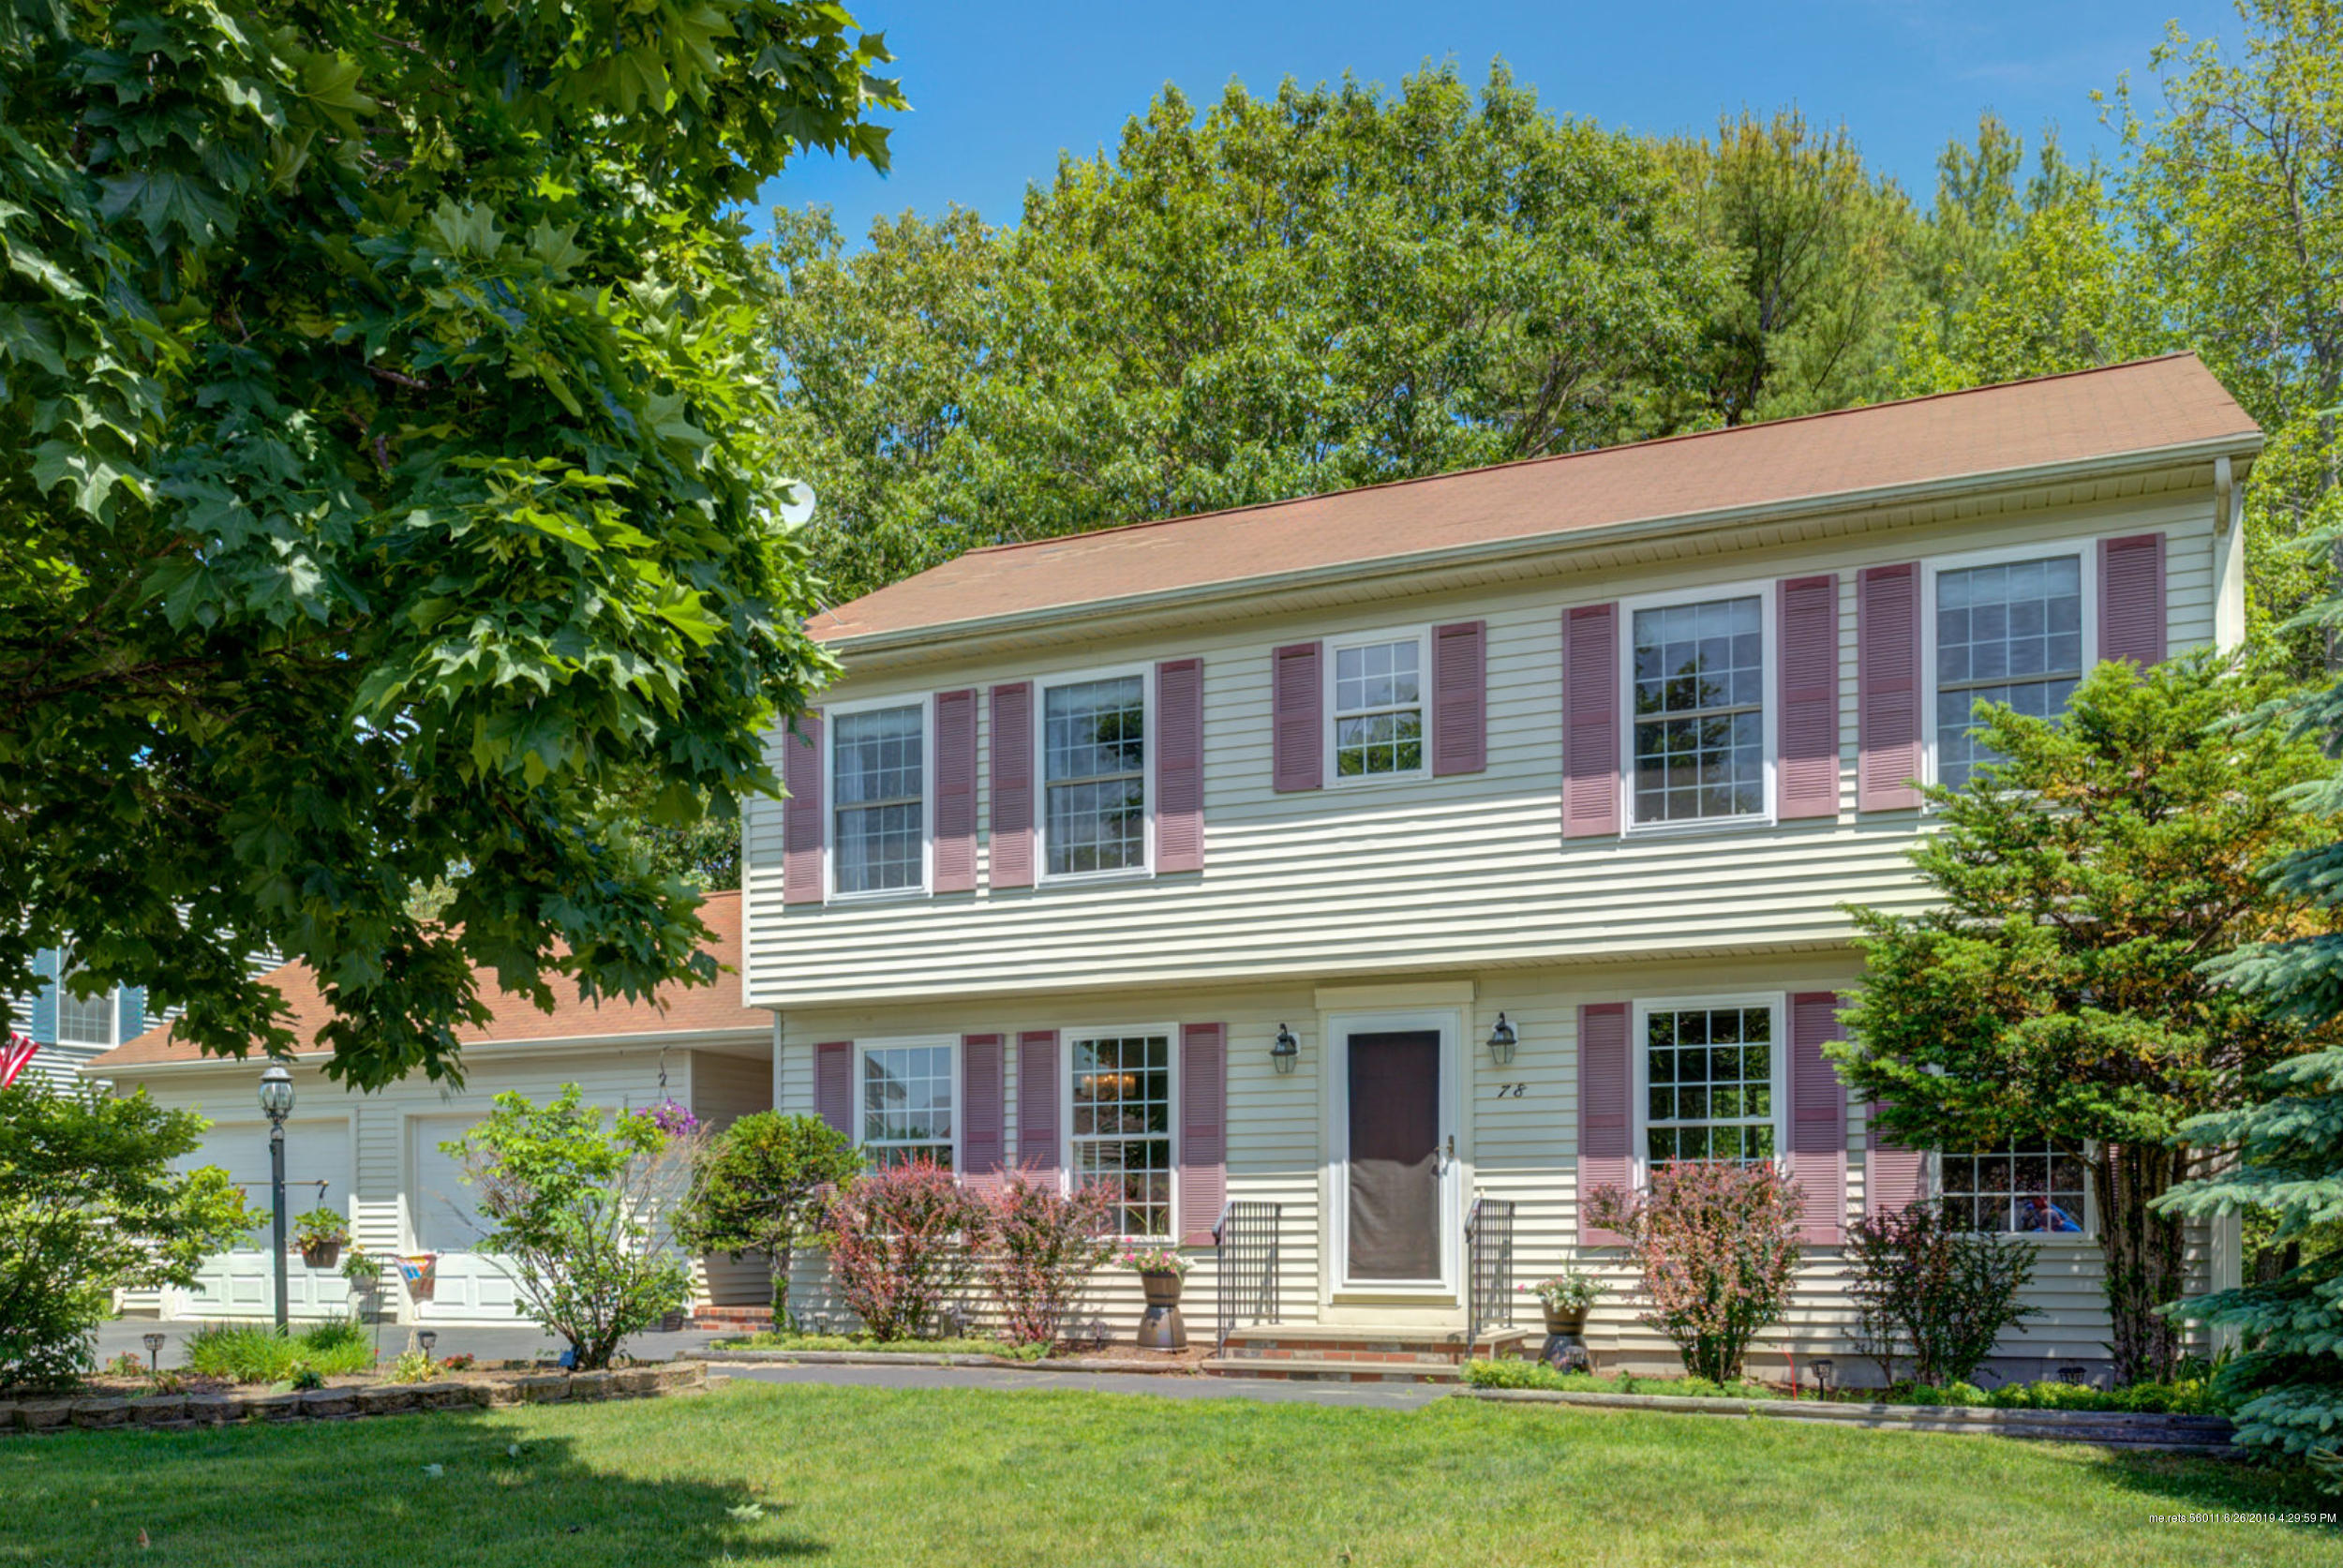 Pleasing 78 Snowberry Drive South Portland Me Mls 1421878 Home Interior And Landscaping Palasignezvosmurscom